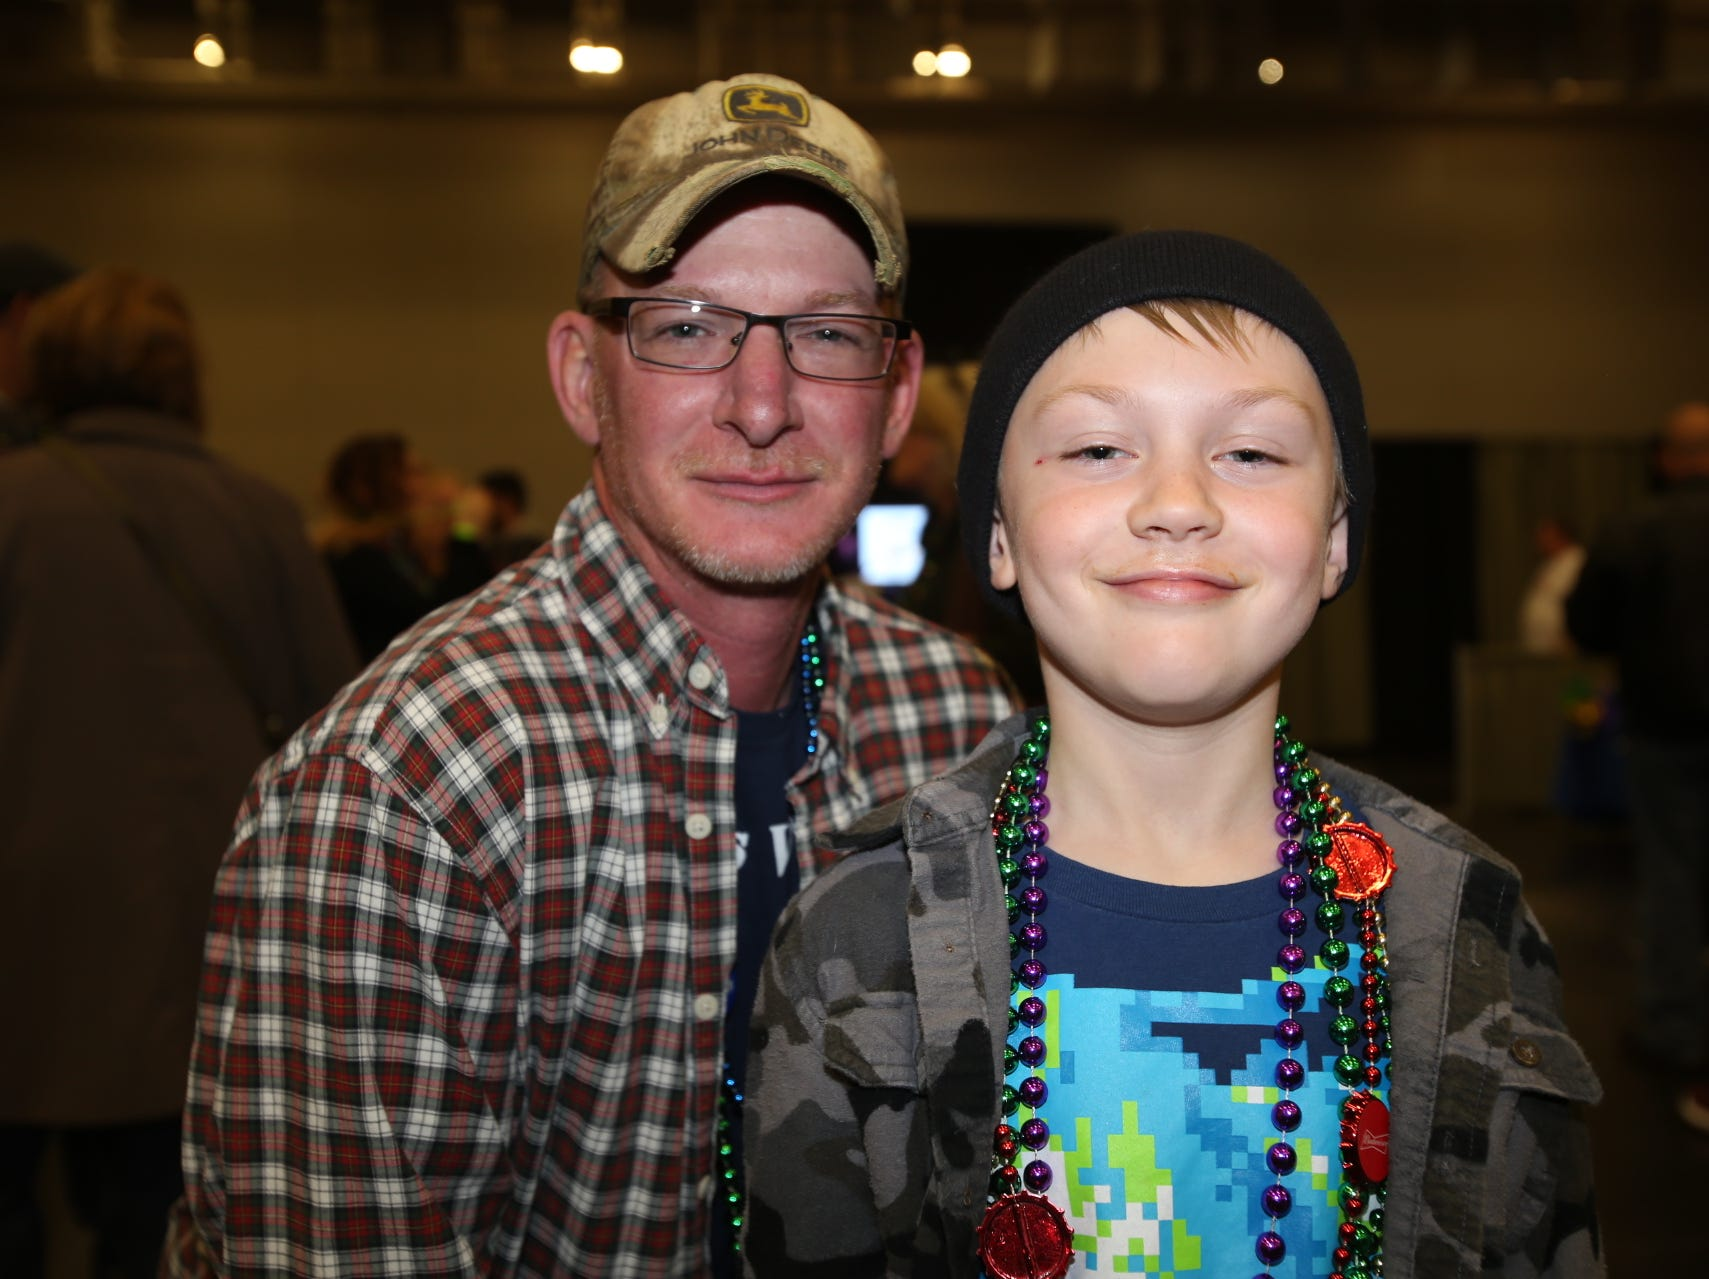 Donnie and Samuel Sindle